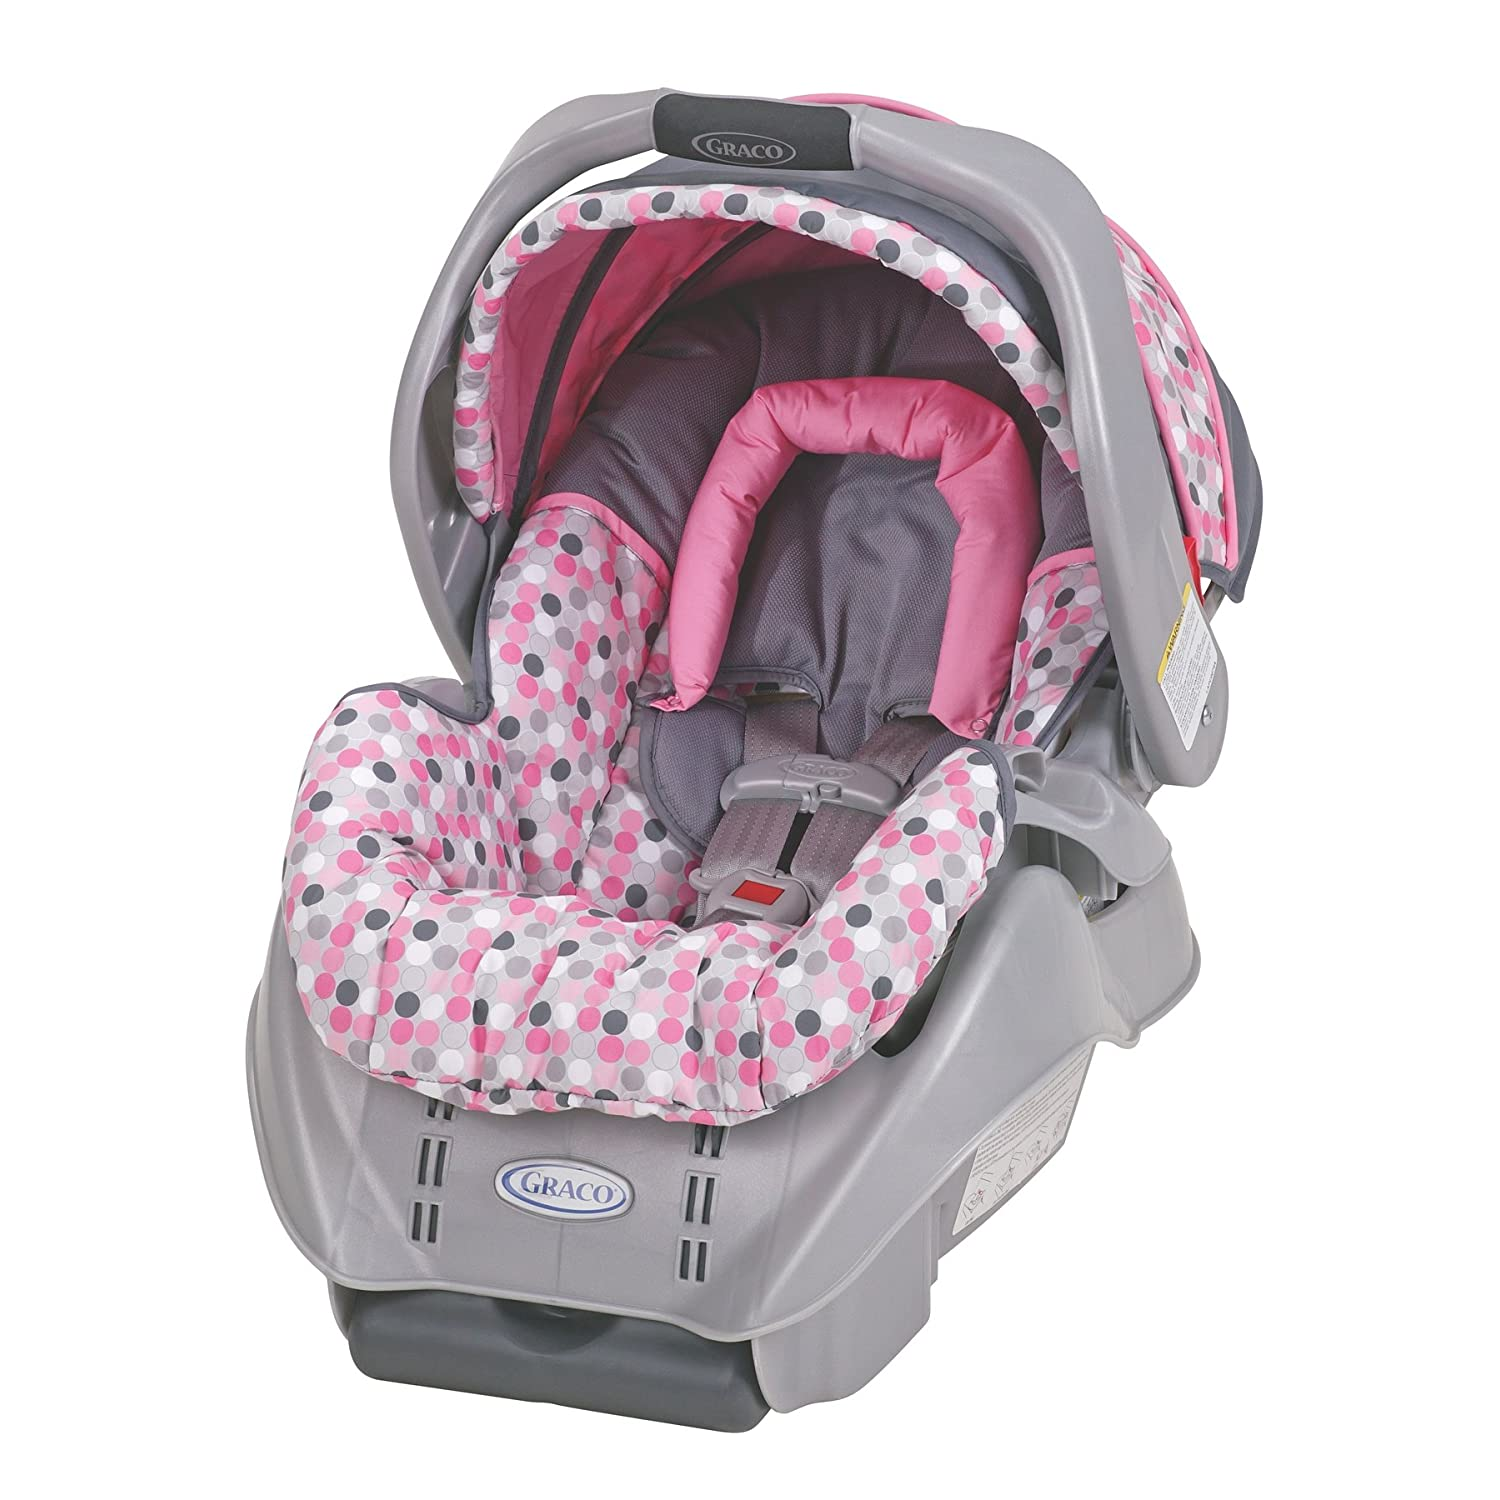 Baby Car Seat Reviews Under 100 Dollars: Graco SnugRide